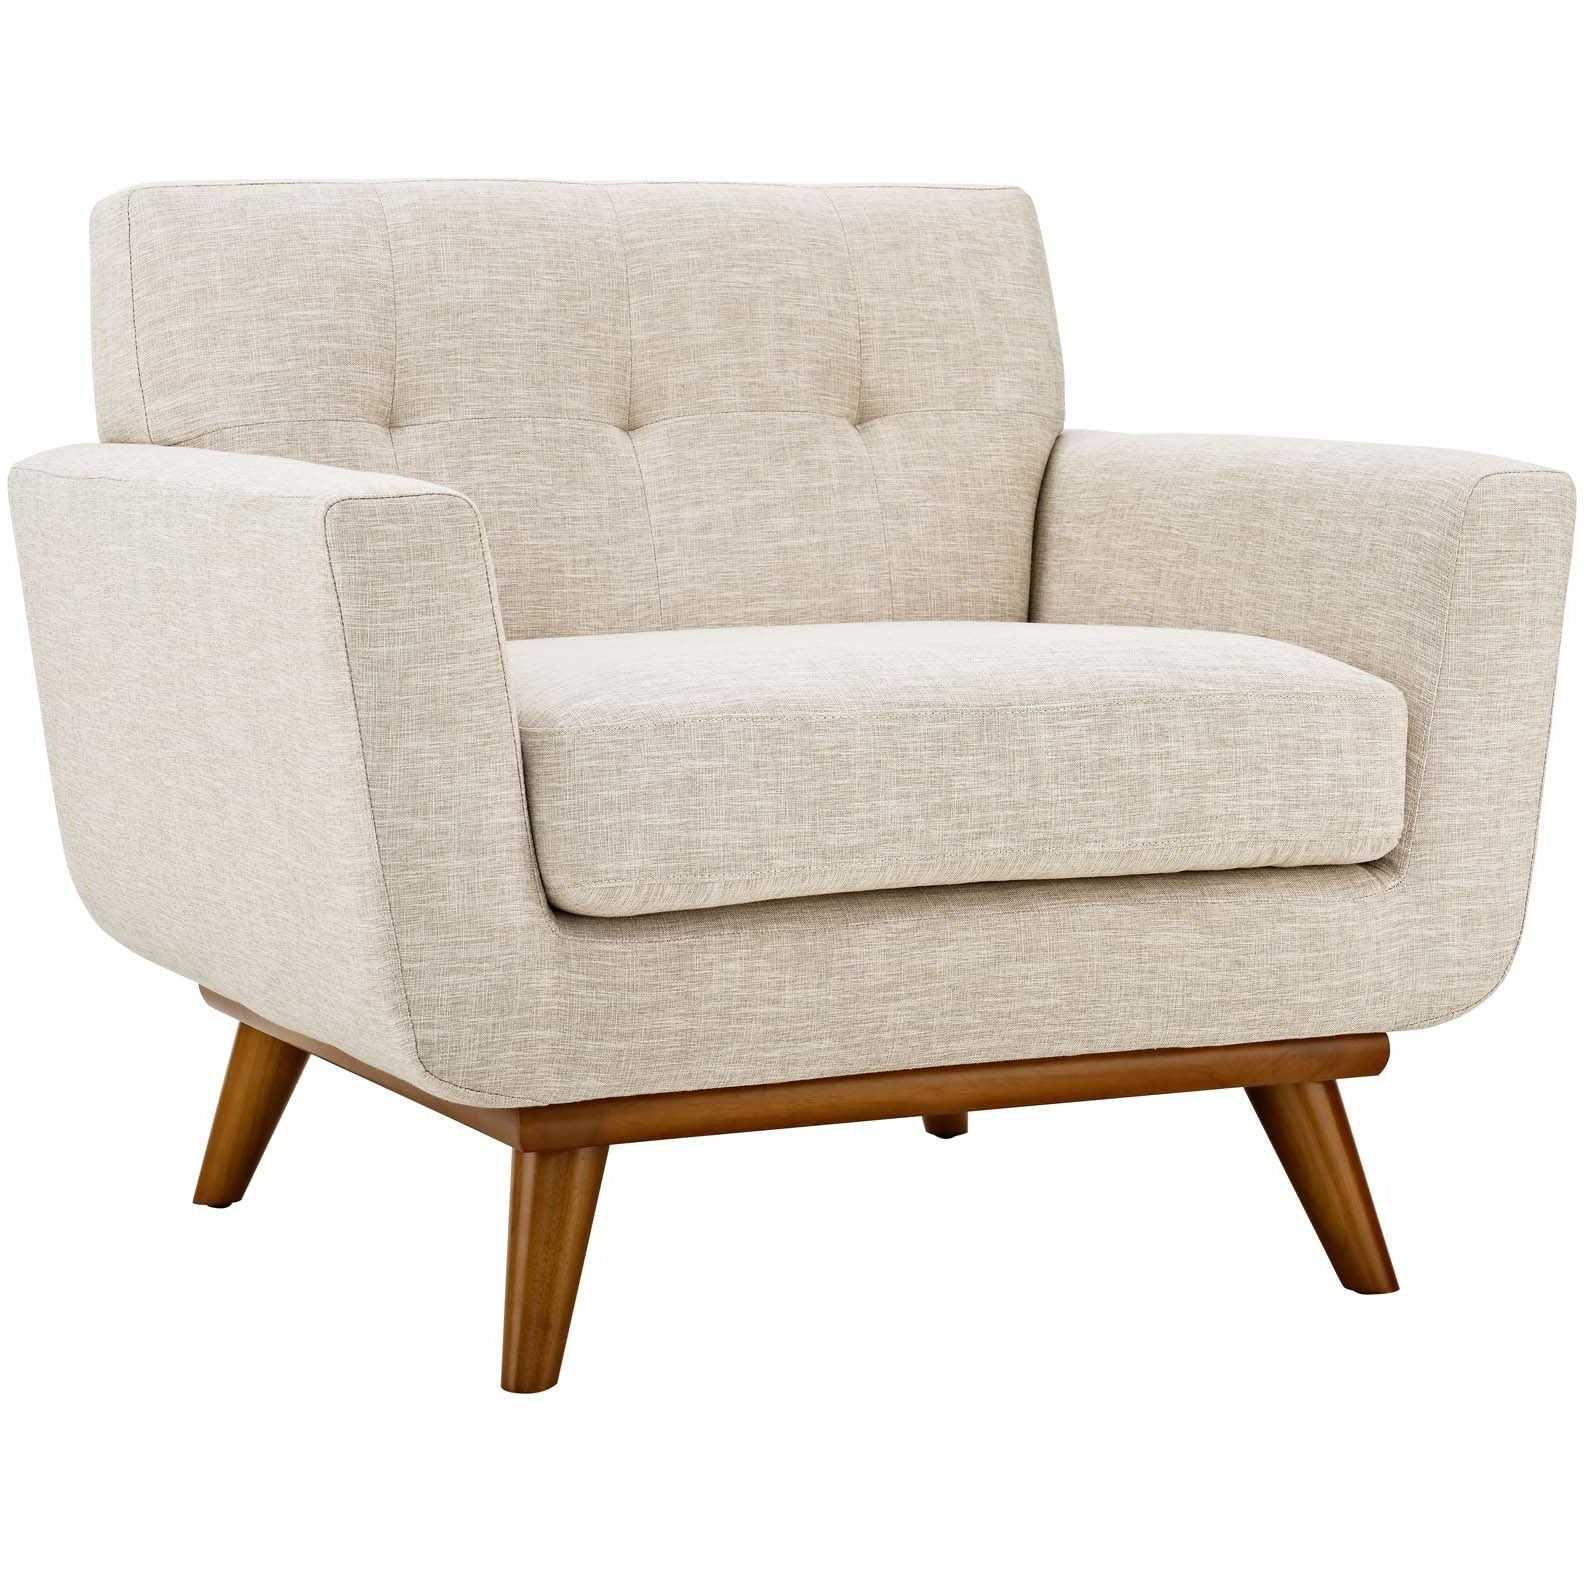 Engage Armchair and Sofa Set of 2 - Beige